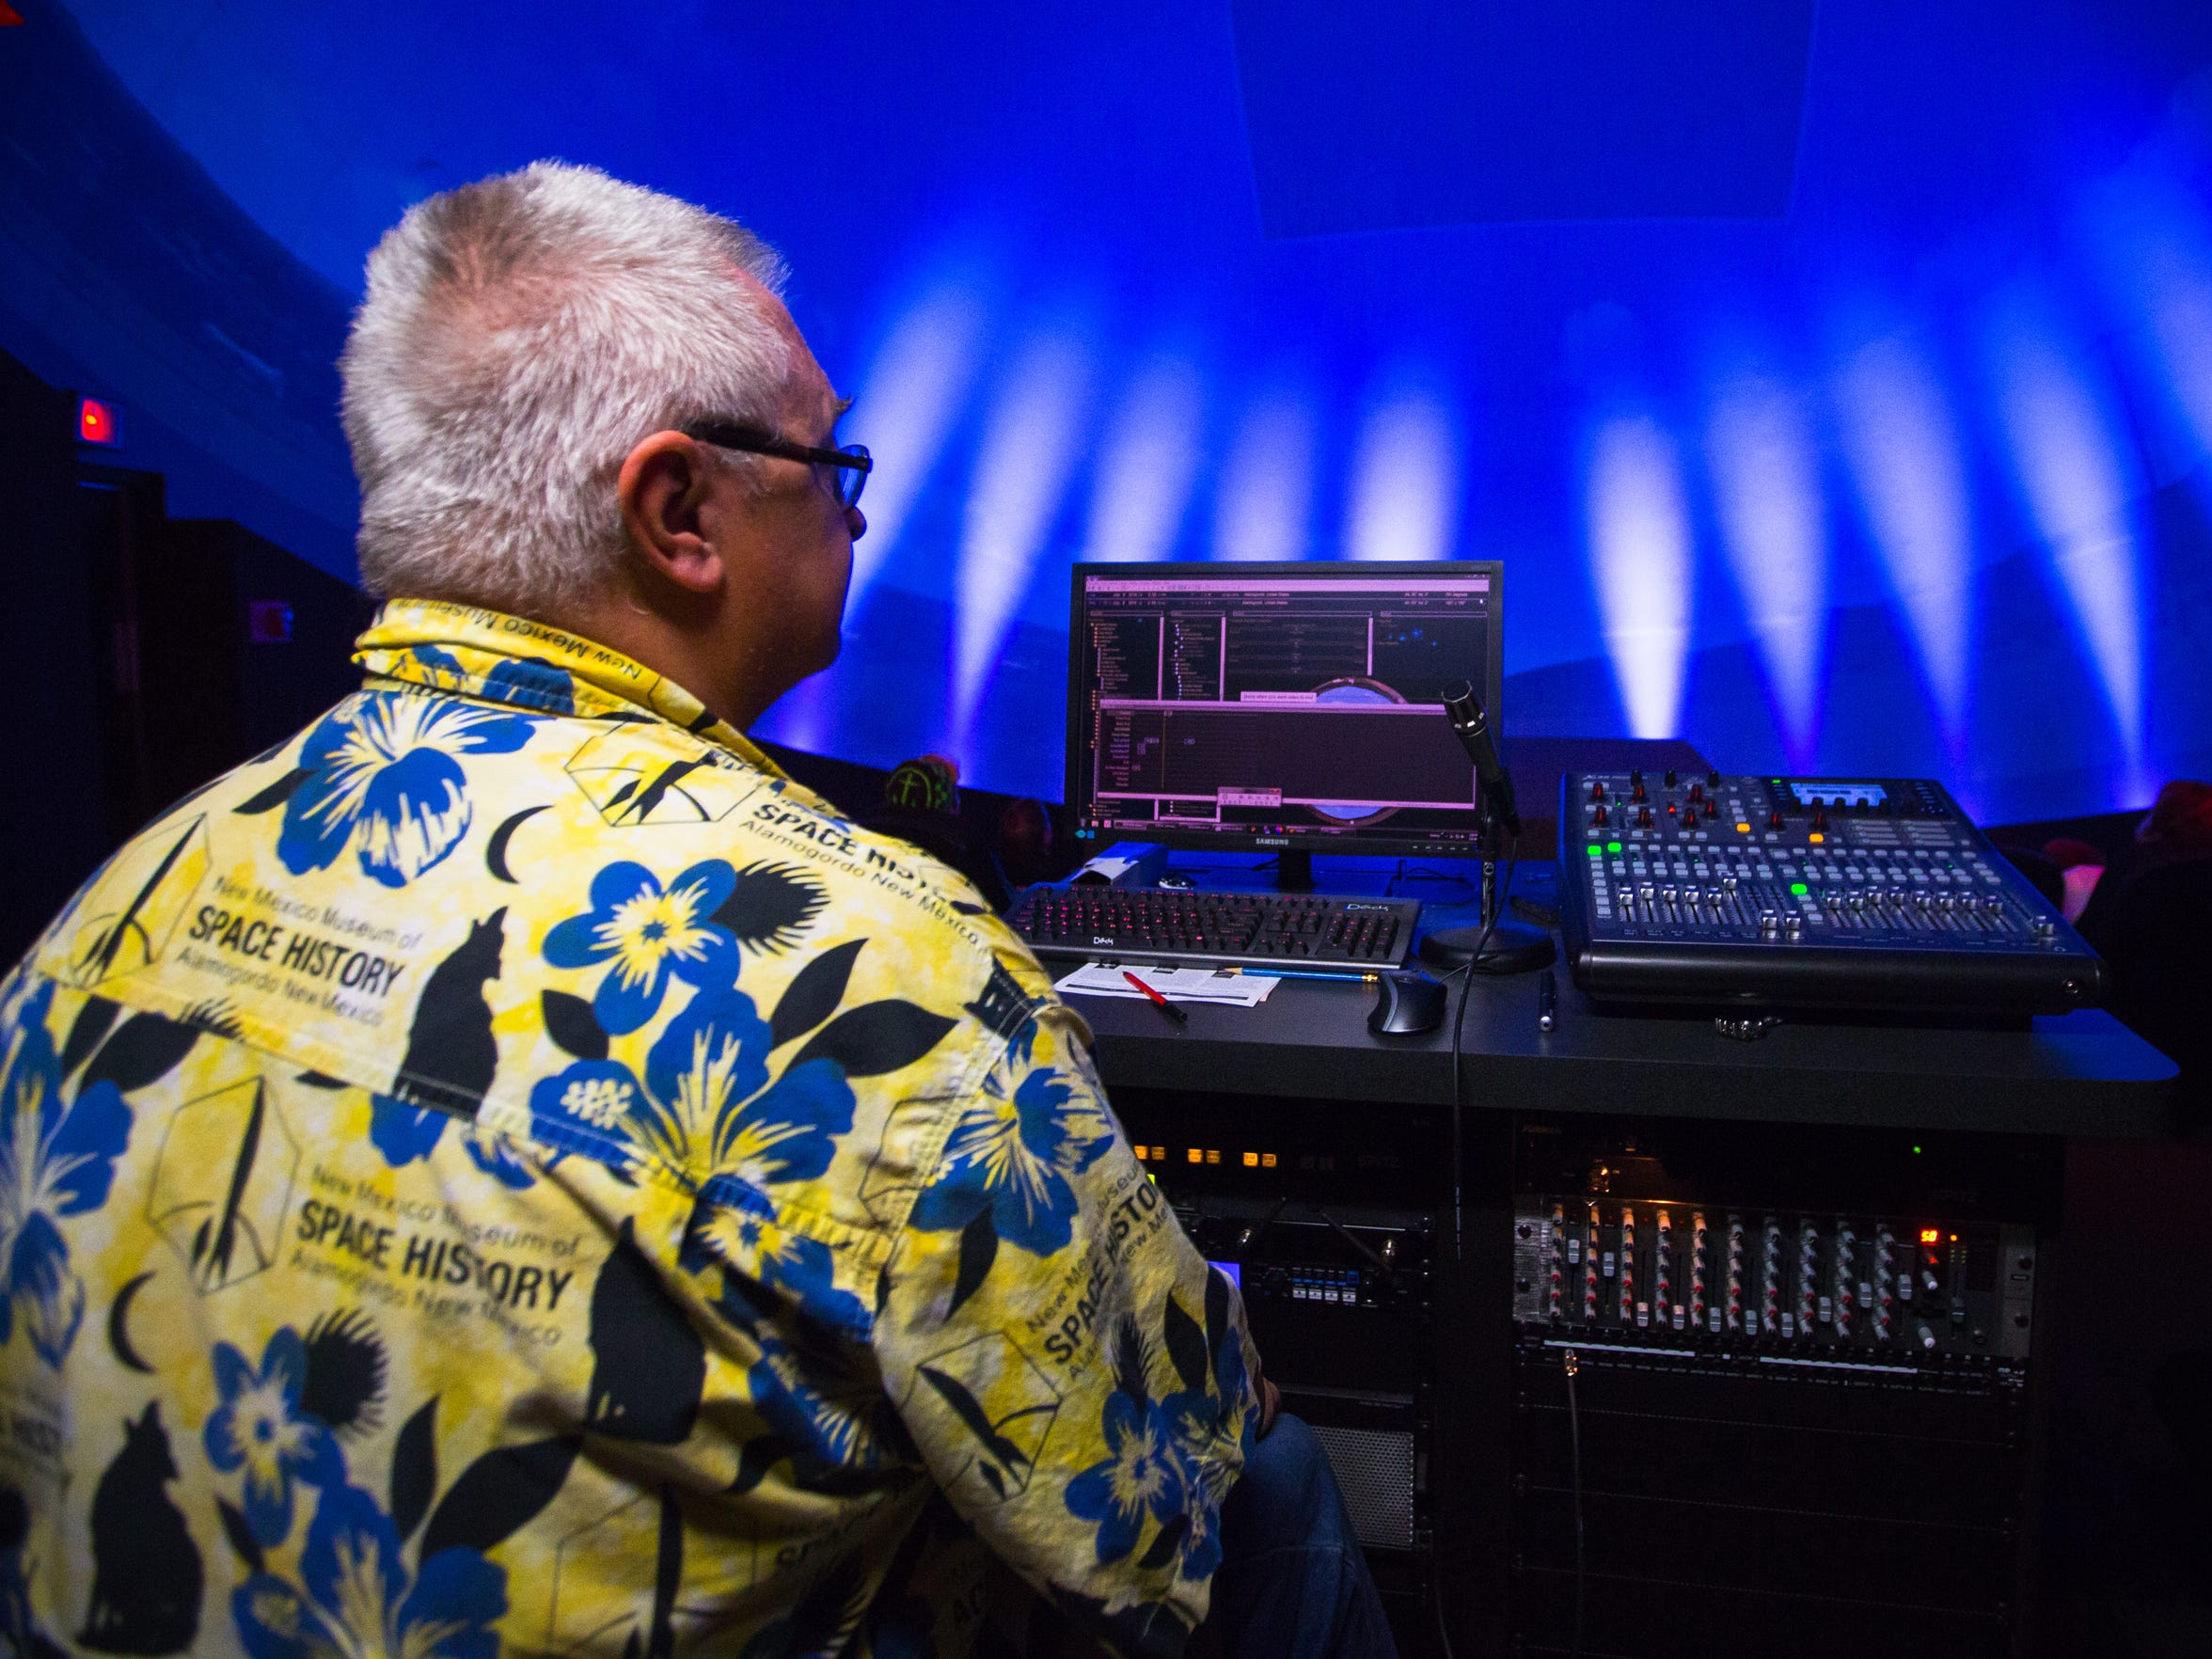 New Mexico Museum of Space History Science Specialist Paul Hughen sits at a control console in the New Horizons Dome Theater & Planetarium before the start of a show, July 8, 2016.